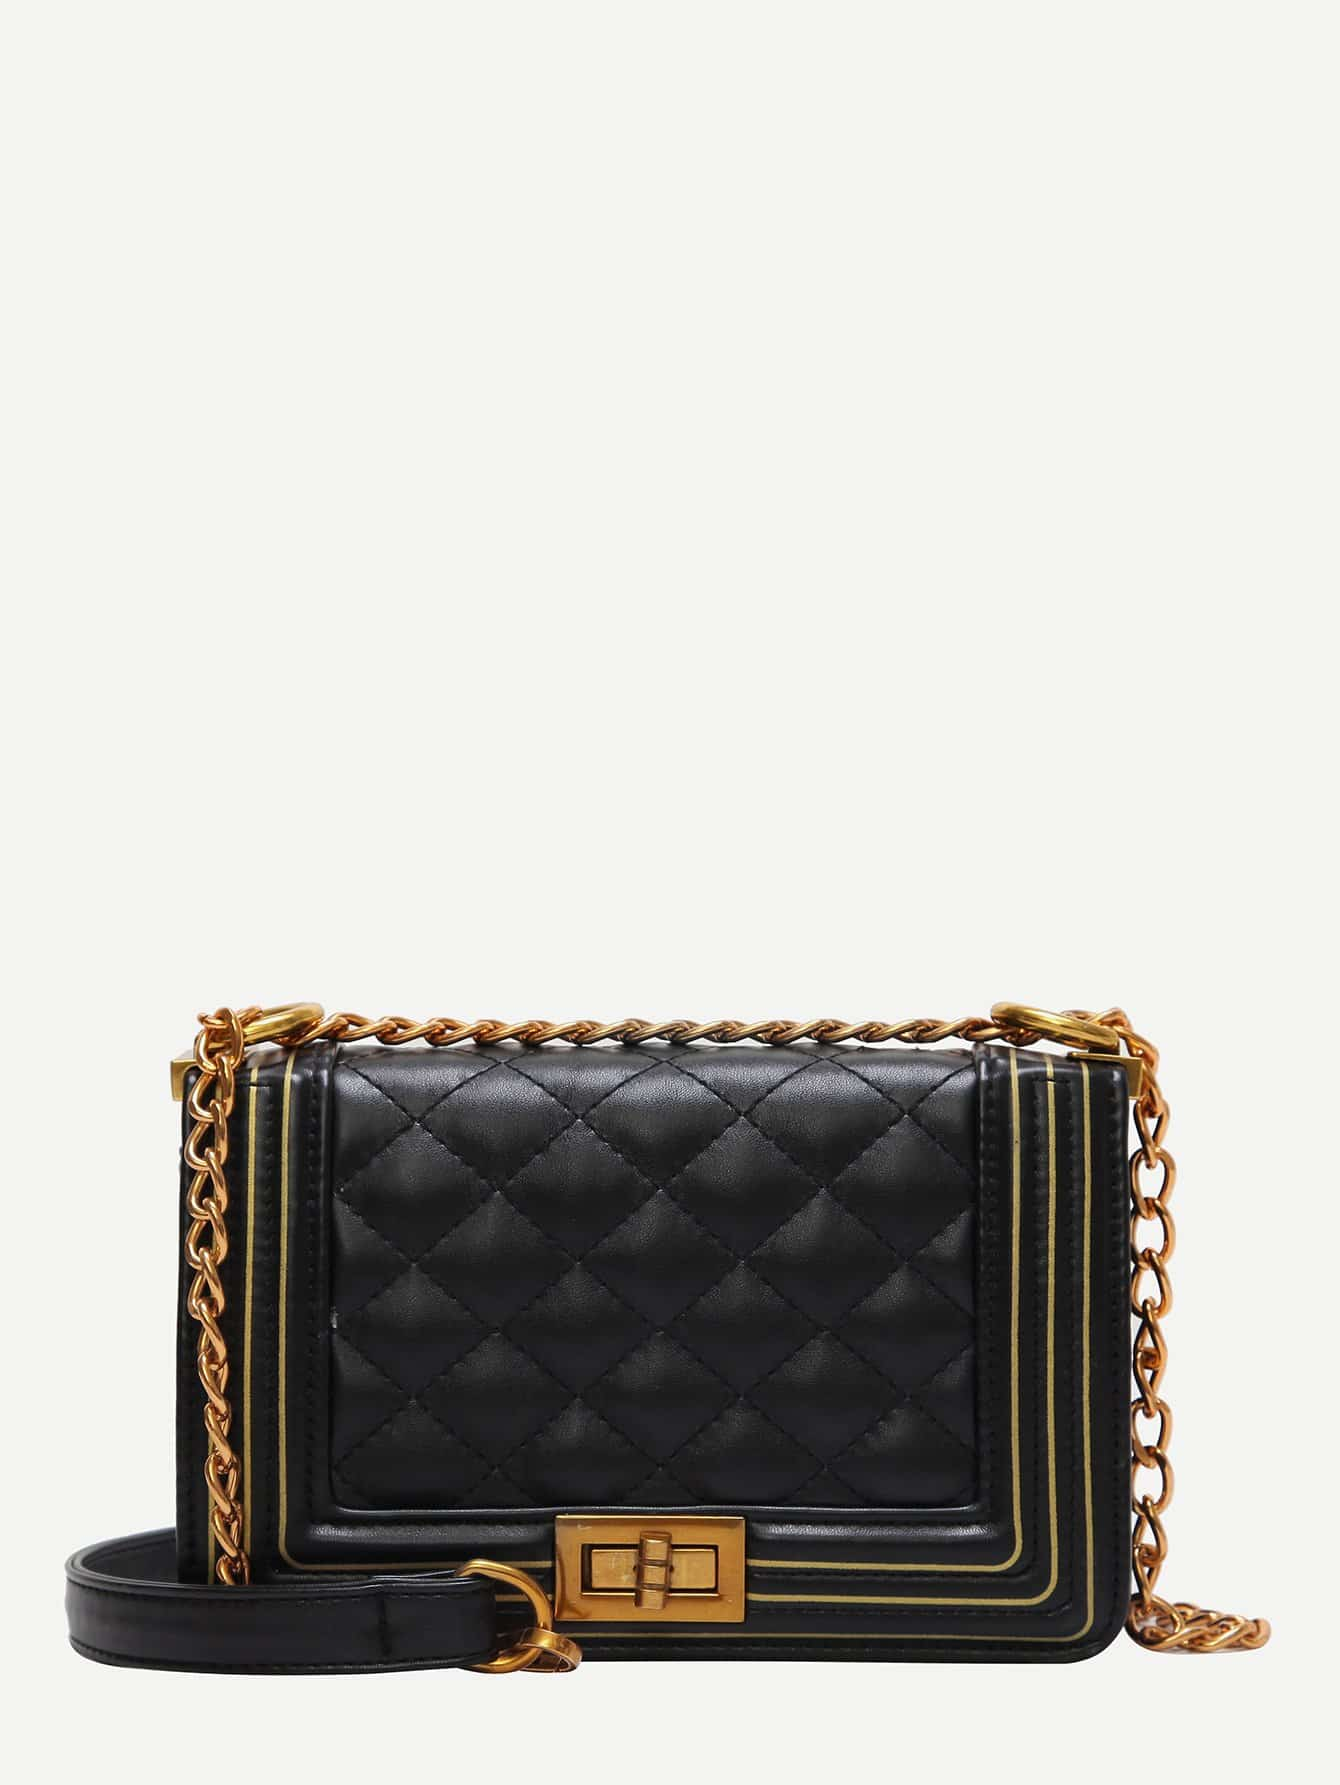 Twist Lock Decor Quilted Chain Bag metal lock quilted chain bag